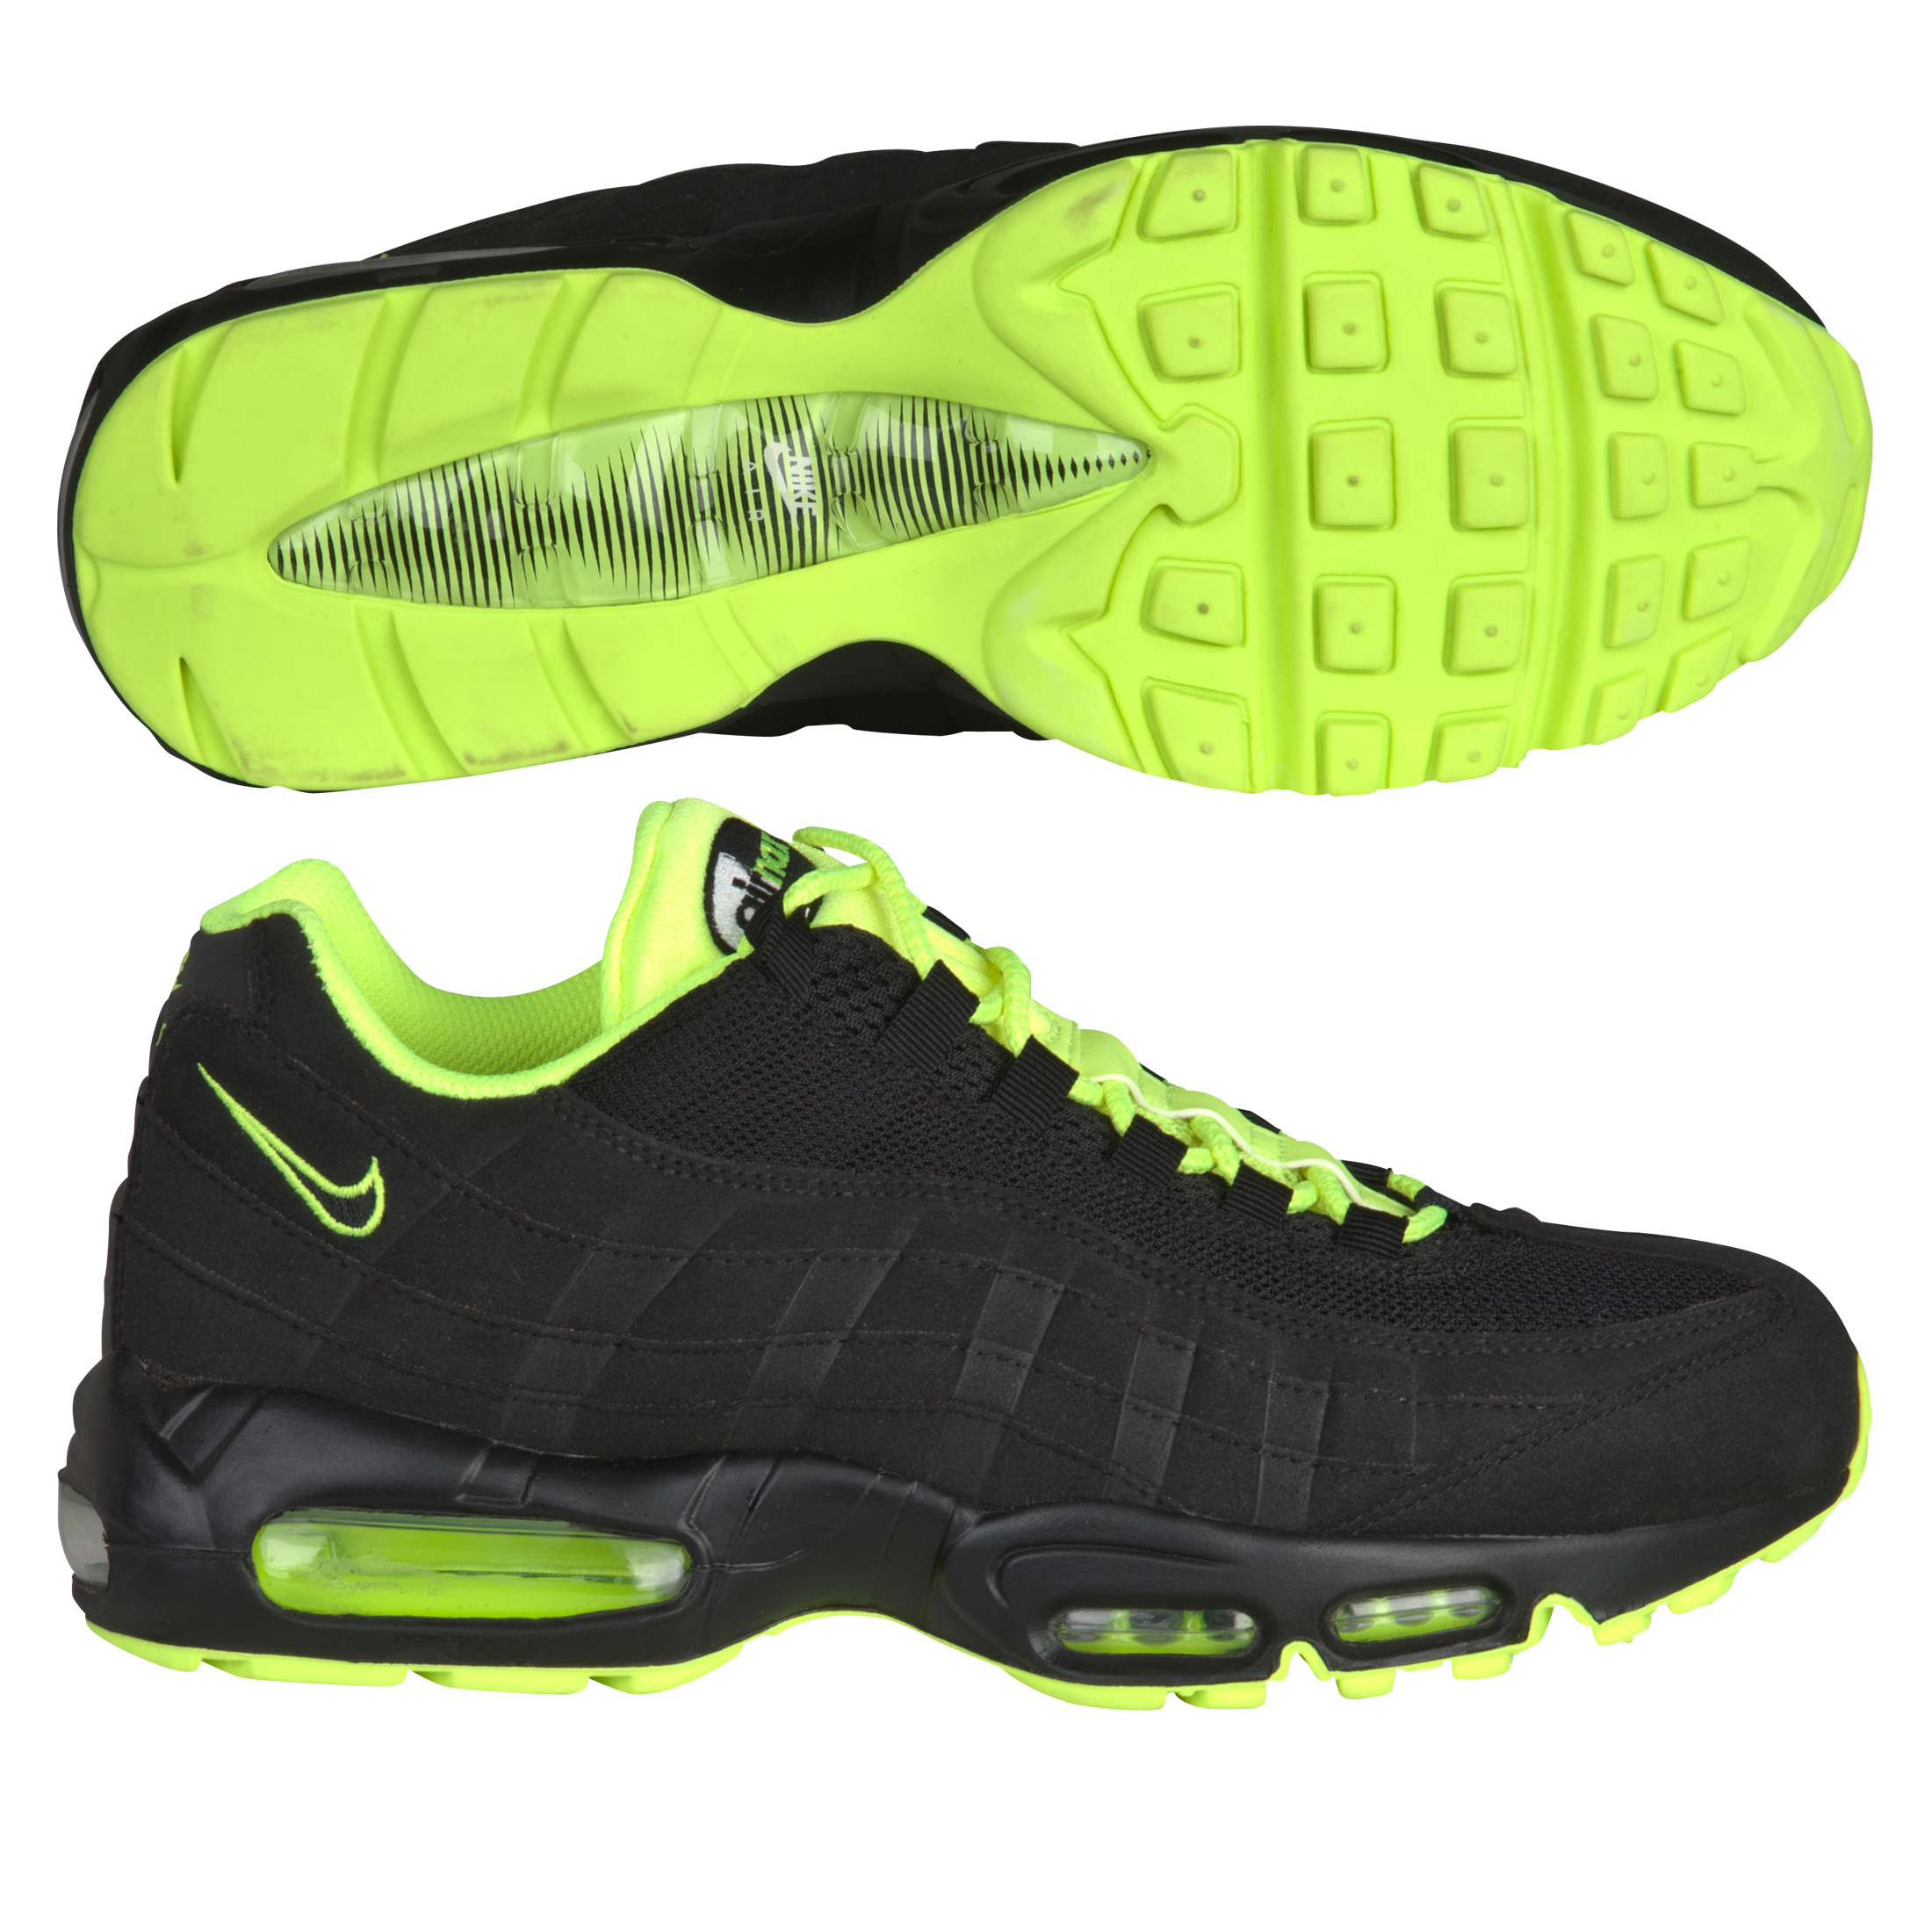 Nike Air Max '95 LE Trainers - Black/White/Volt